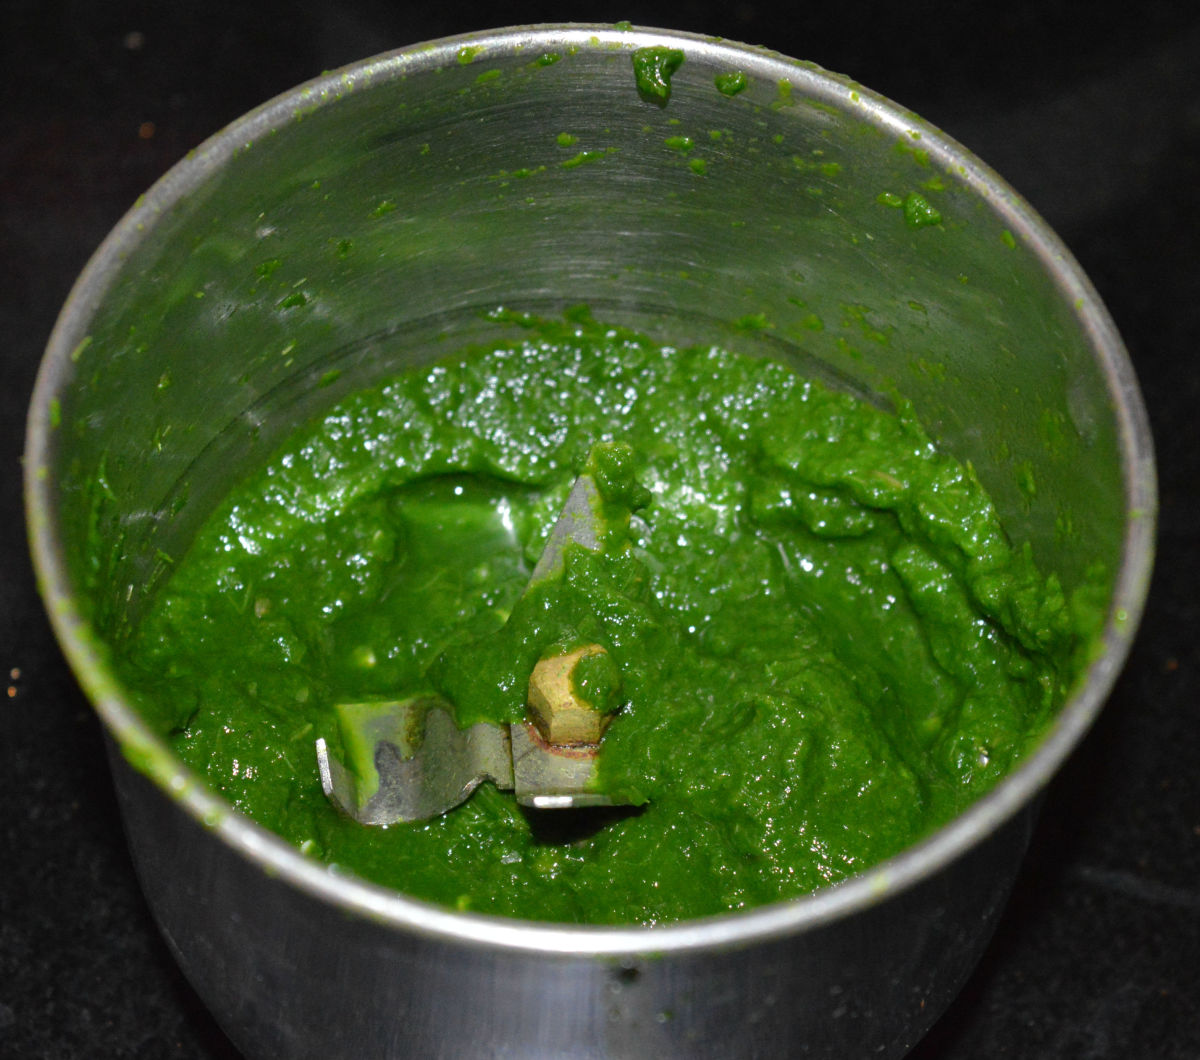 The spinach puree.